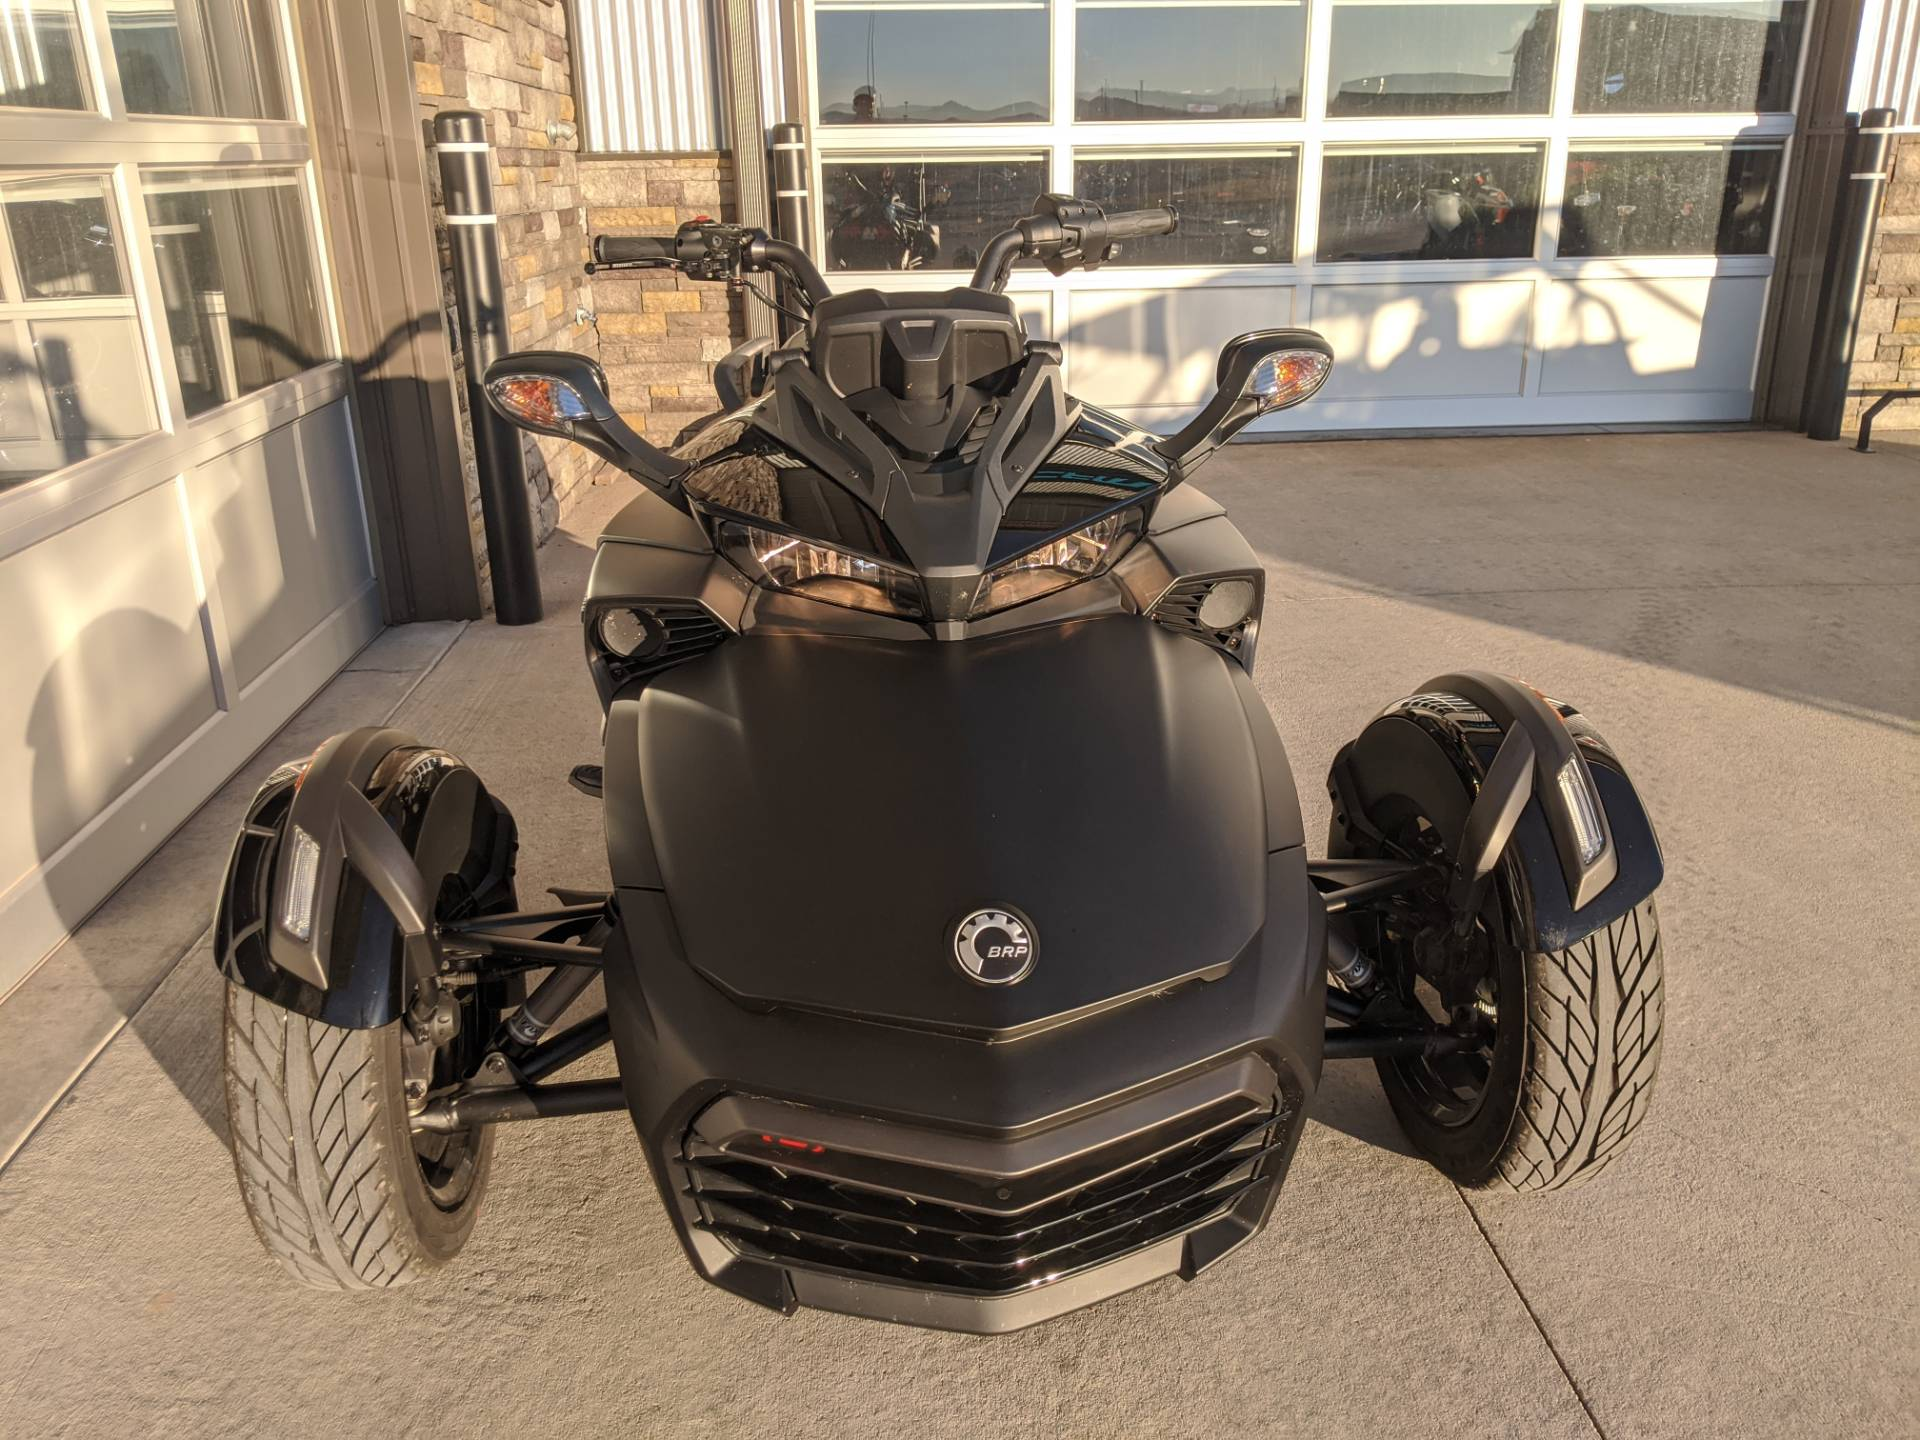 2018 Can-Am Spyder F3-S SE6 in Rapid City, South Dakota - Photo 5